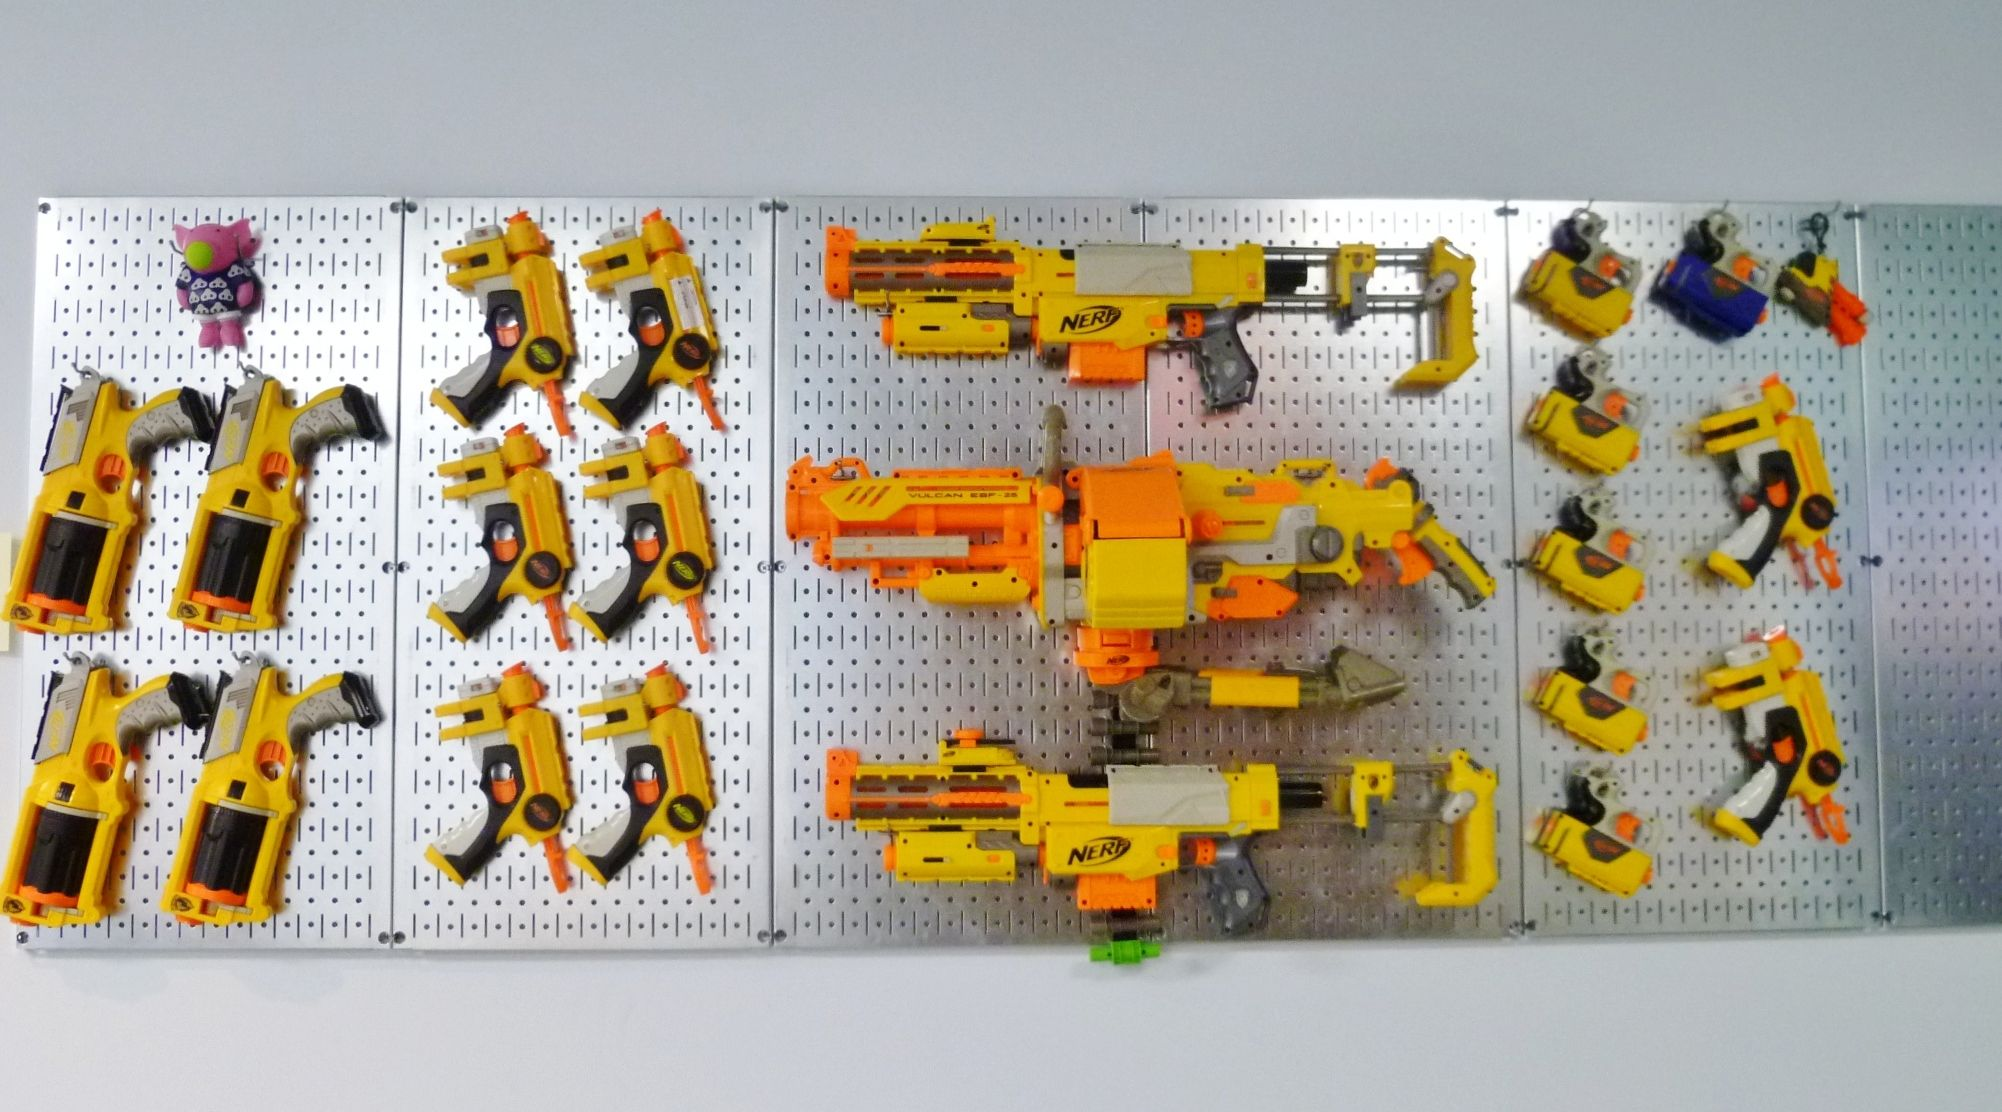 Nerf Gun Storage Rack Organize It All Pinterest Nerf